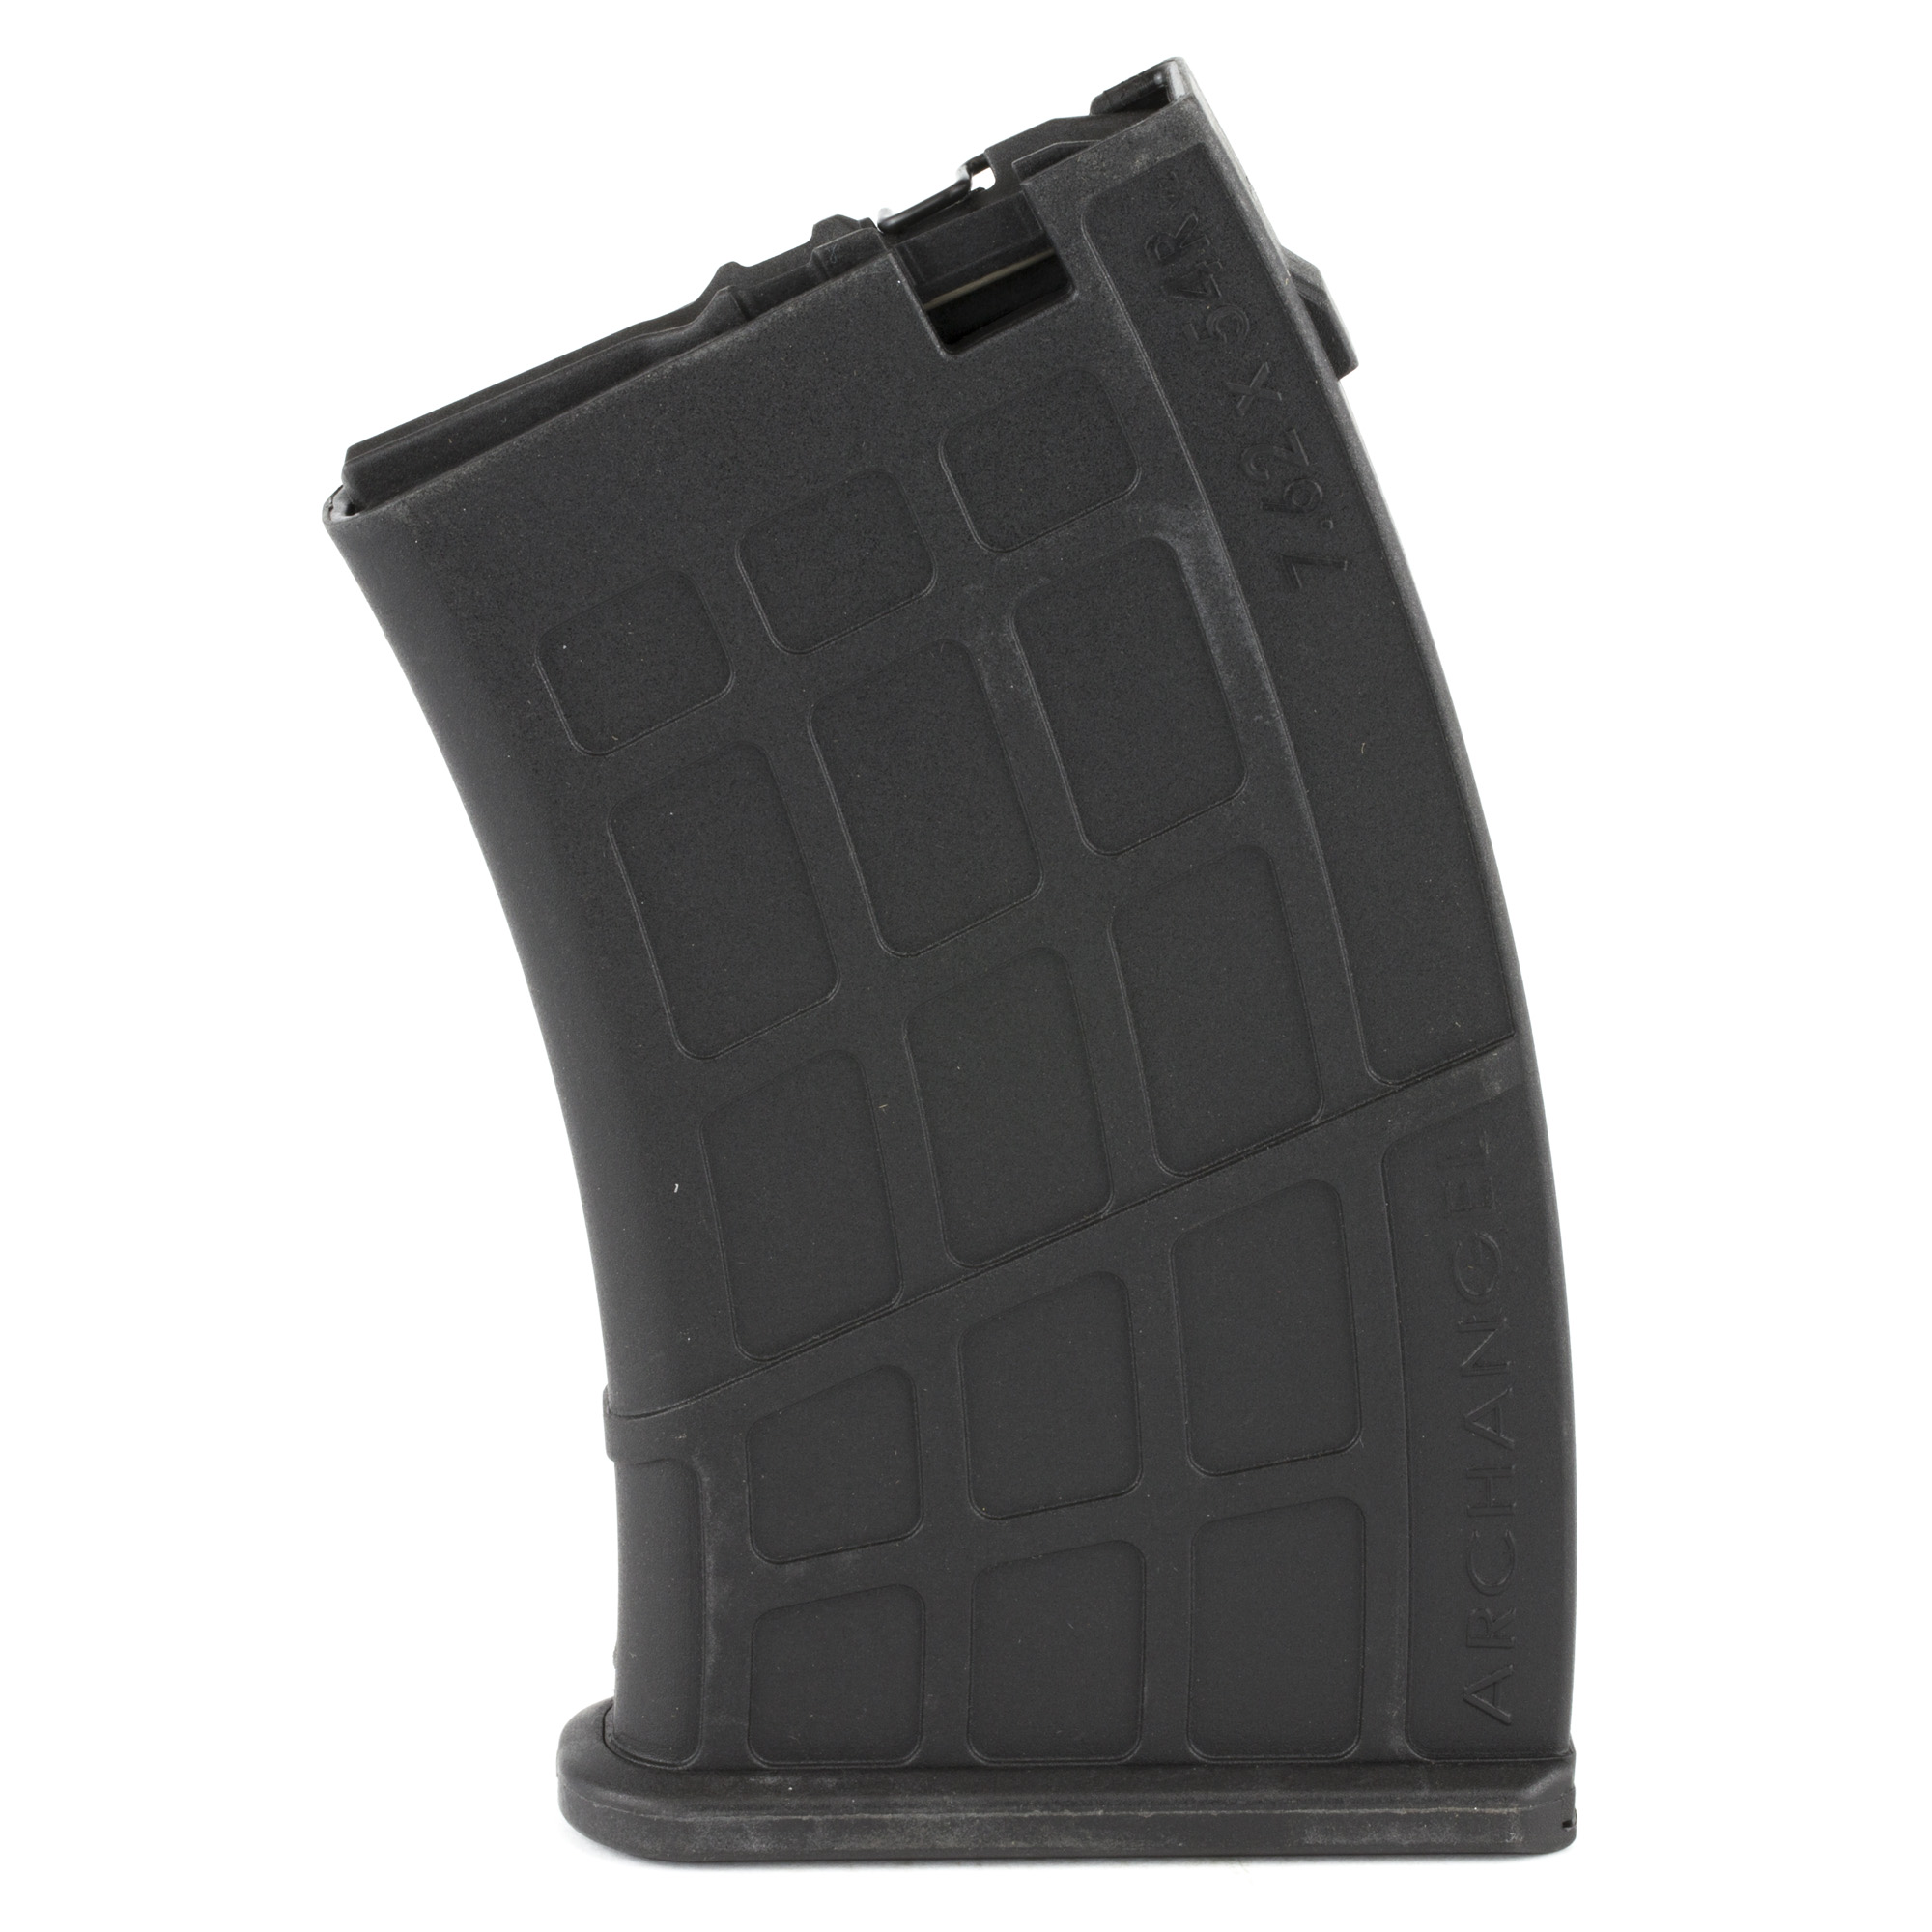 Archangel M-1891 10rd Poly Magazine